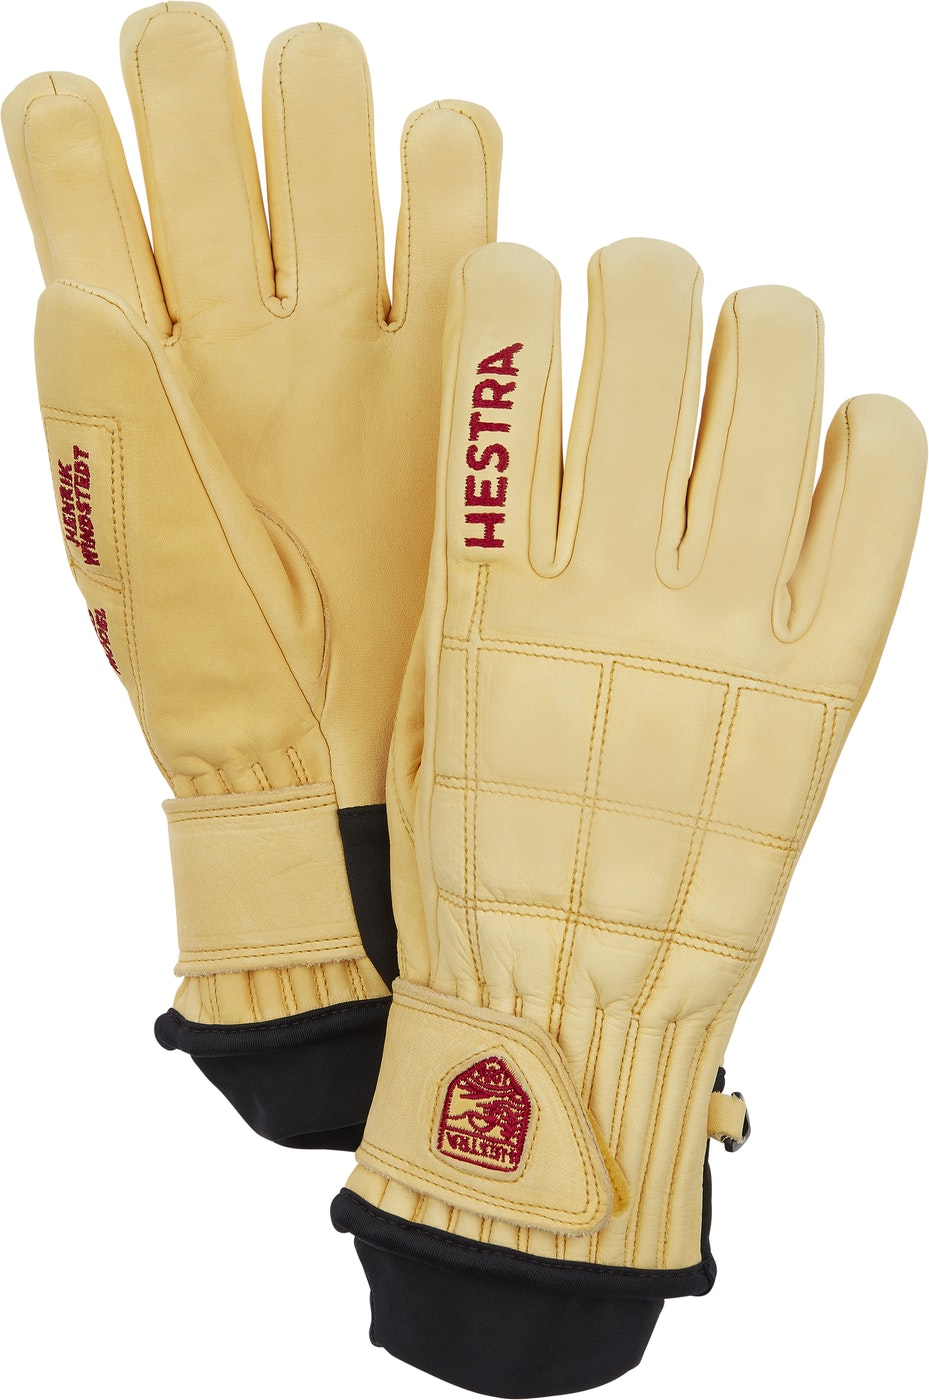 Product image for 30820 Henrik Leather Pro Model